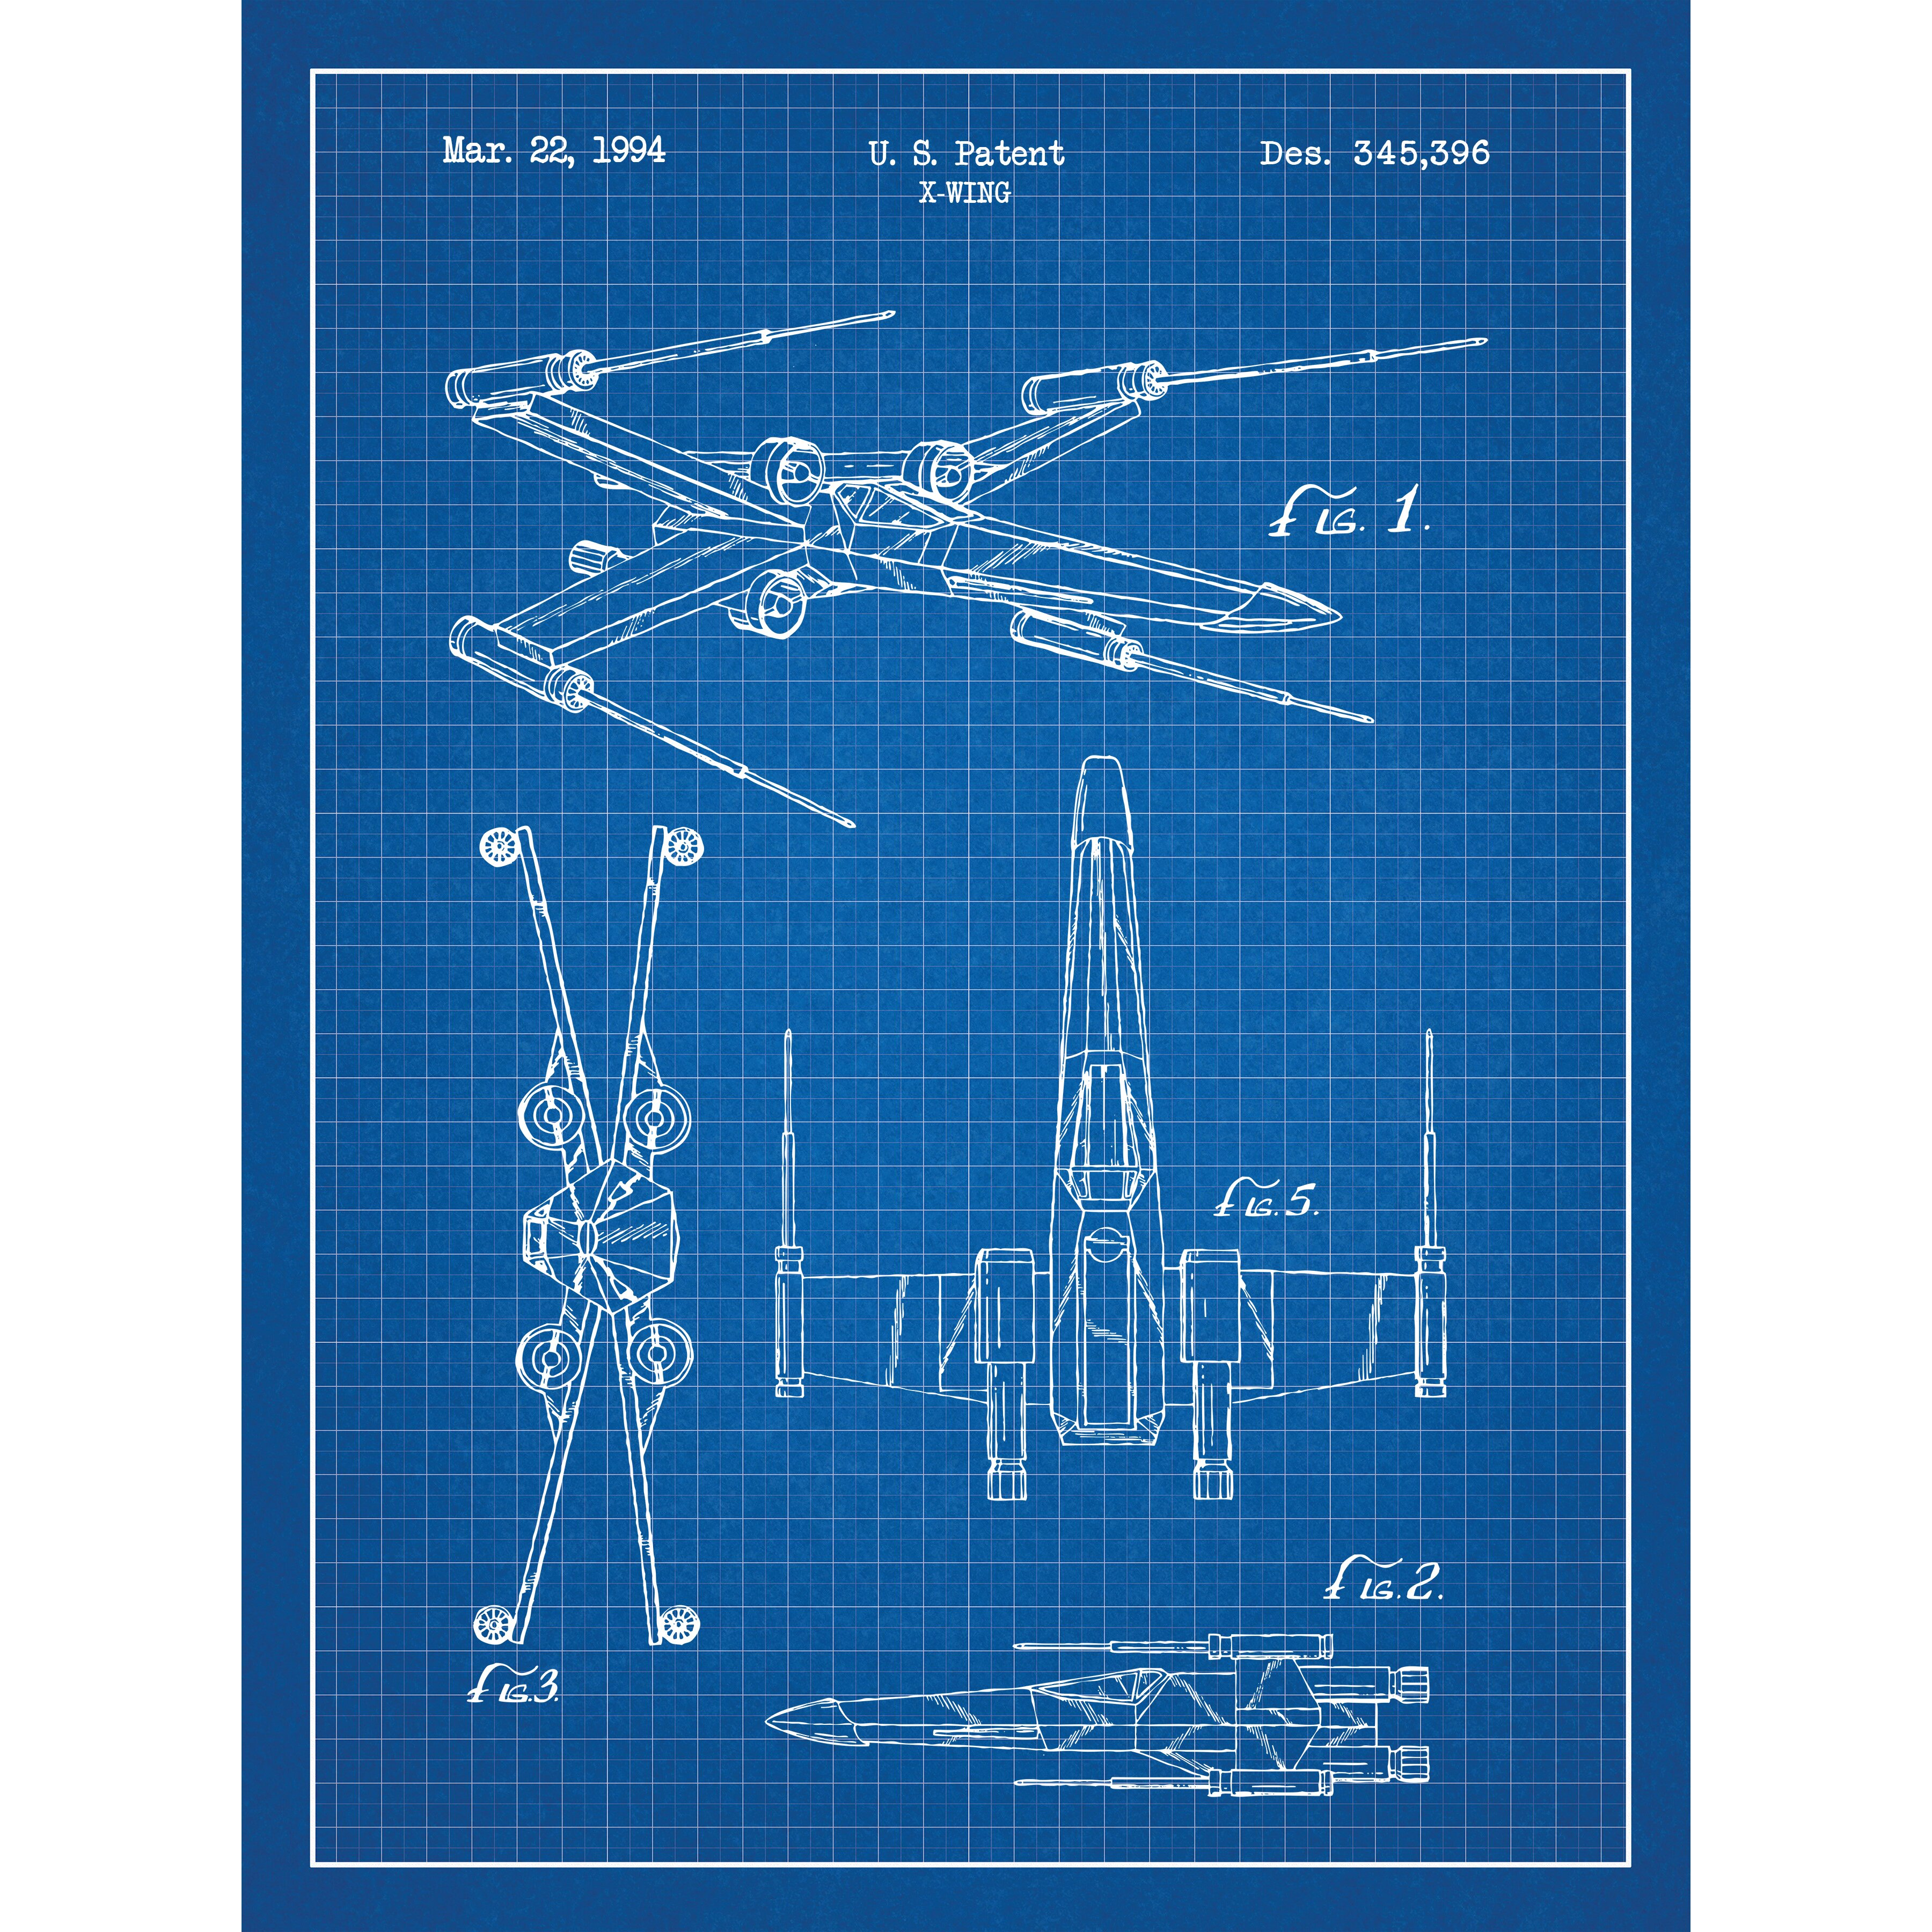 Star wars x wing 2 blueprint graphic art by inked and screened